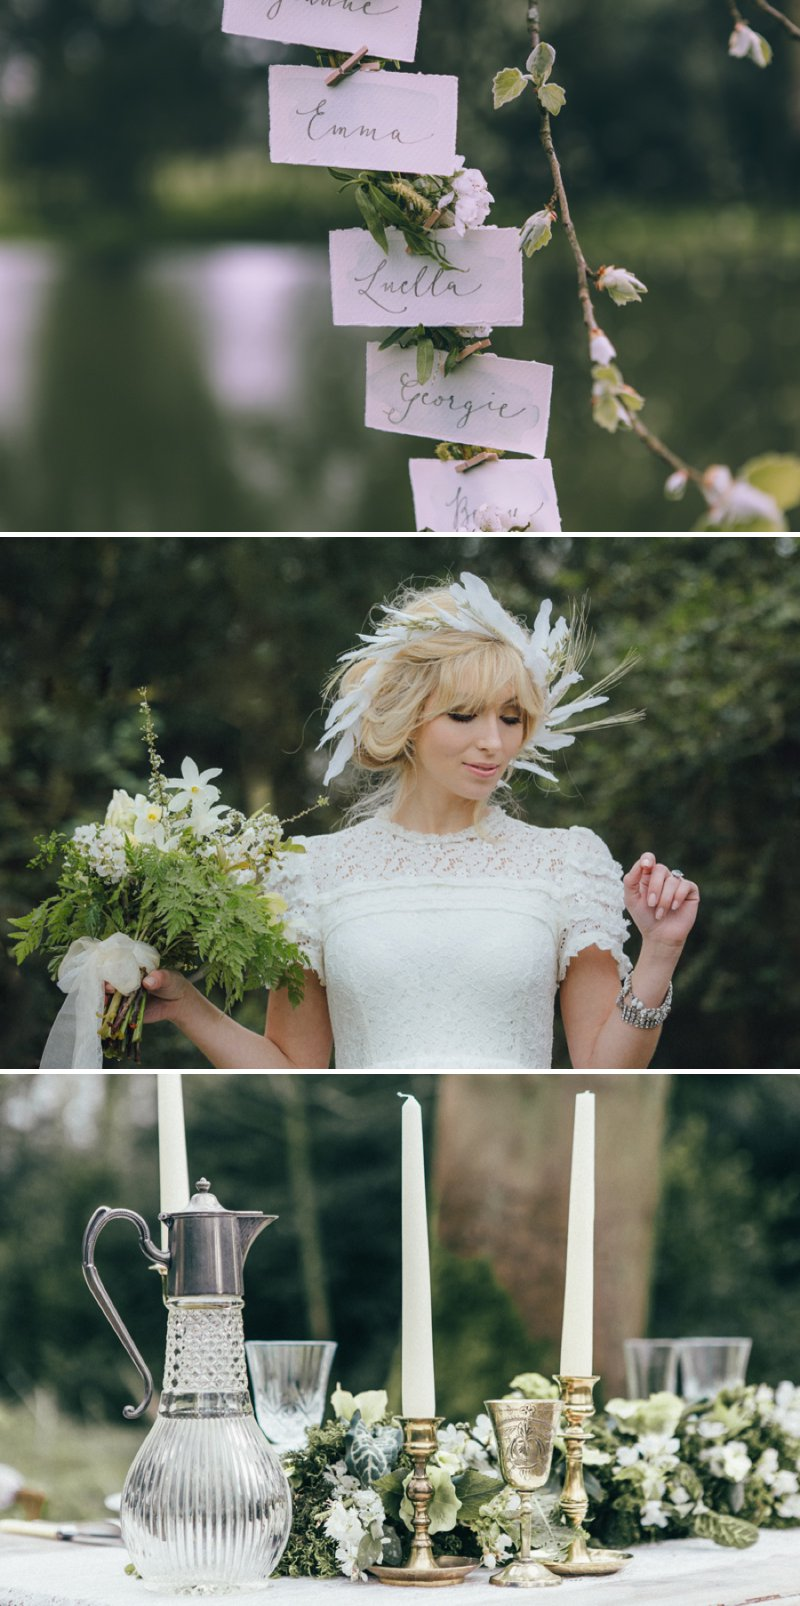 Rustic Bridal Shoot From Coco Venues And Katrina Otter Weddings And Events Inspired By The Promise Of Spring At Narborough Hall Gardens With Dresses From Rue De Seine Bridal With Images From Rebecca Goddard 6